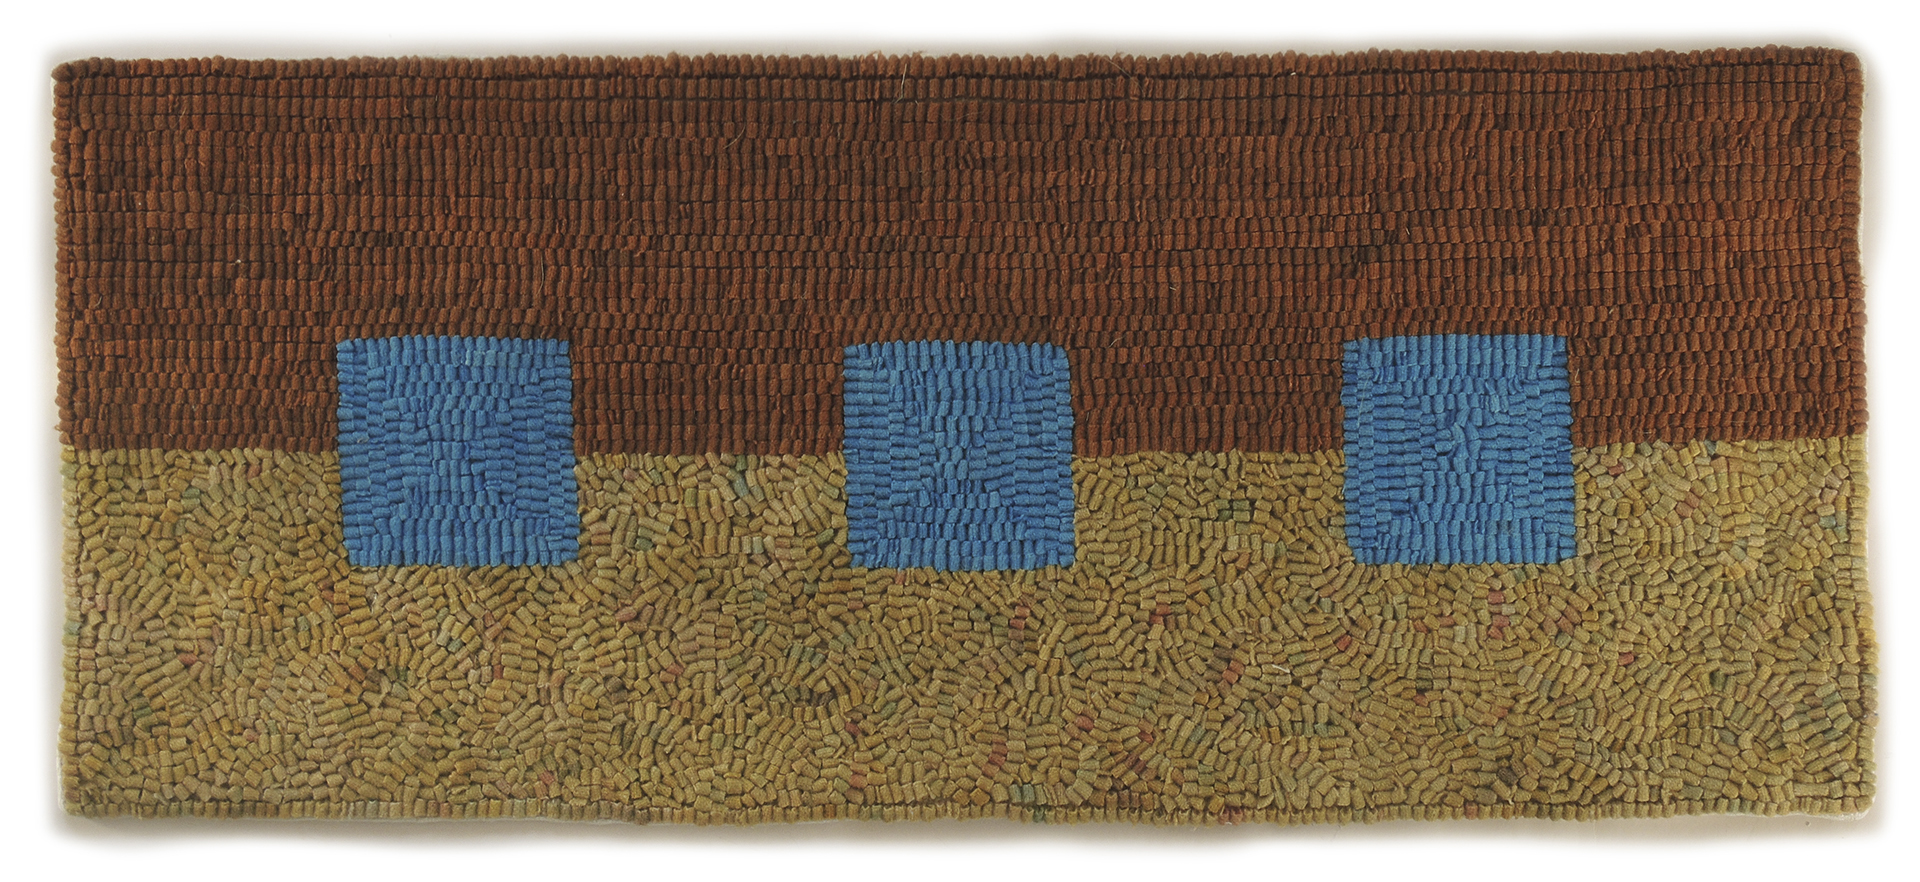 Altoon Sultan. <em>Blue Squares</em>, 2016. Hand-dyed wool on linen,  10 x 23 1/2 inches  (25.4 x 59.7 cm)